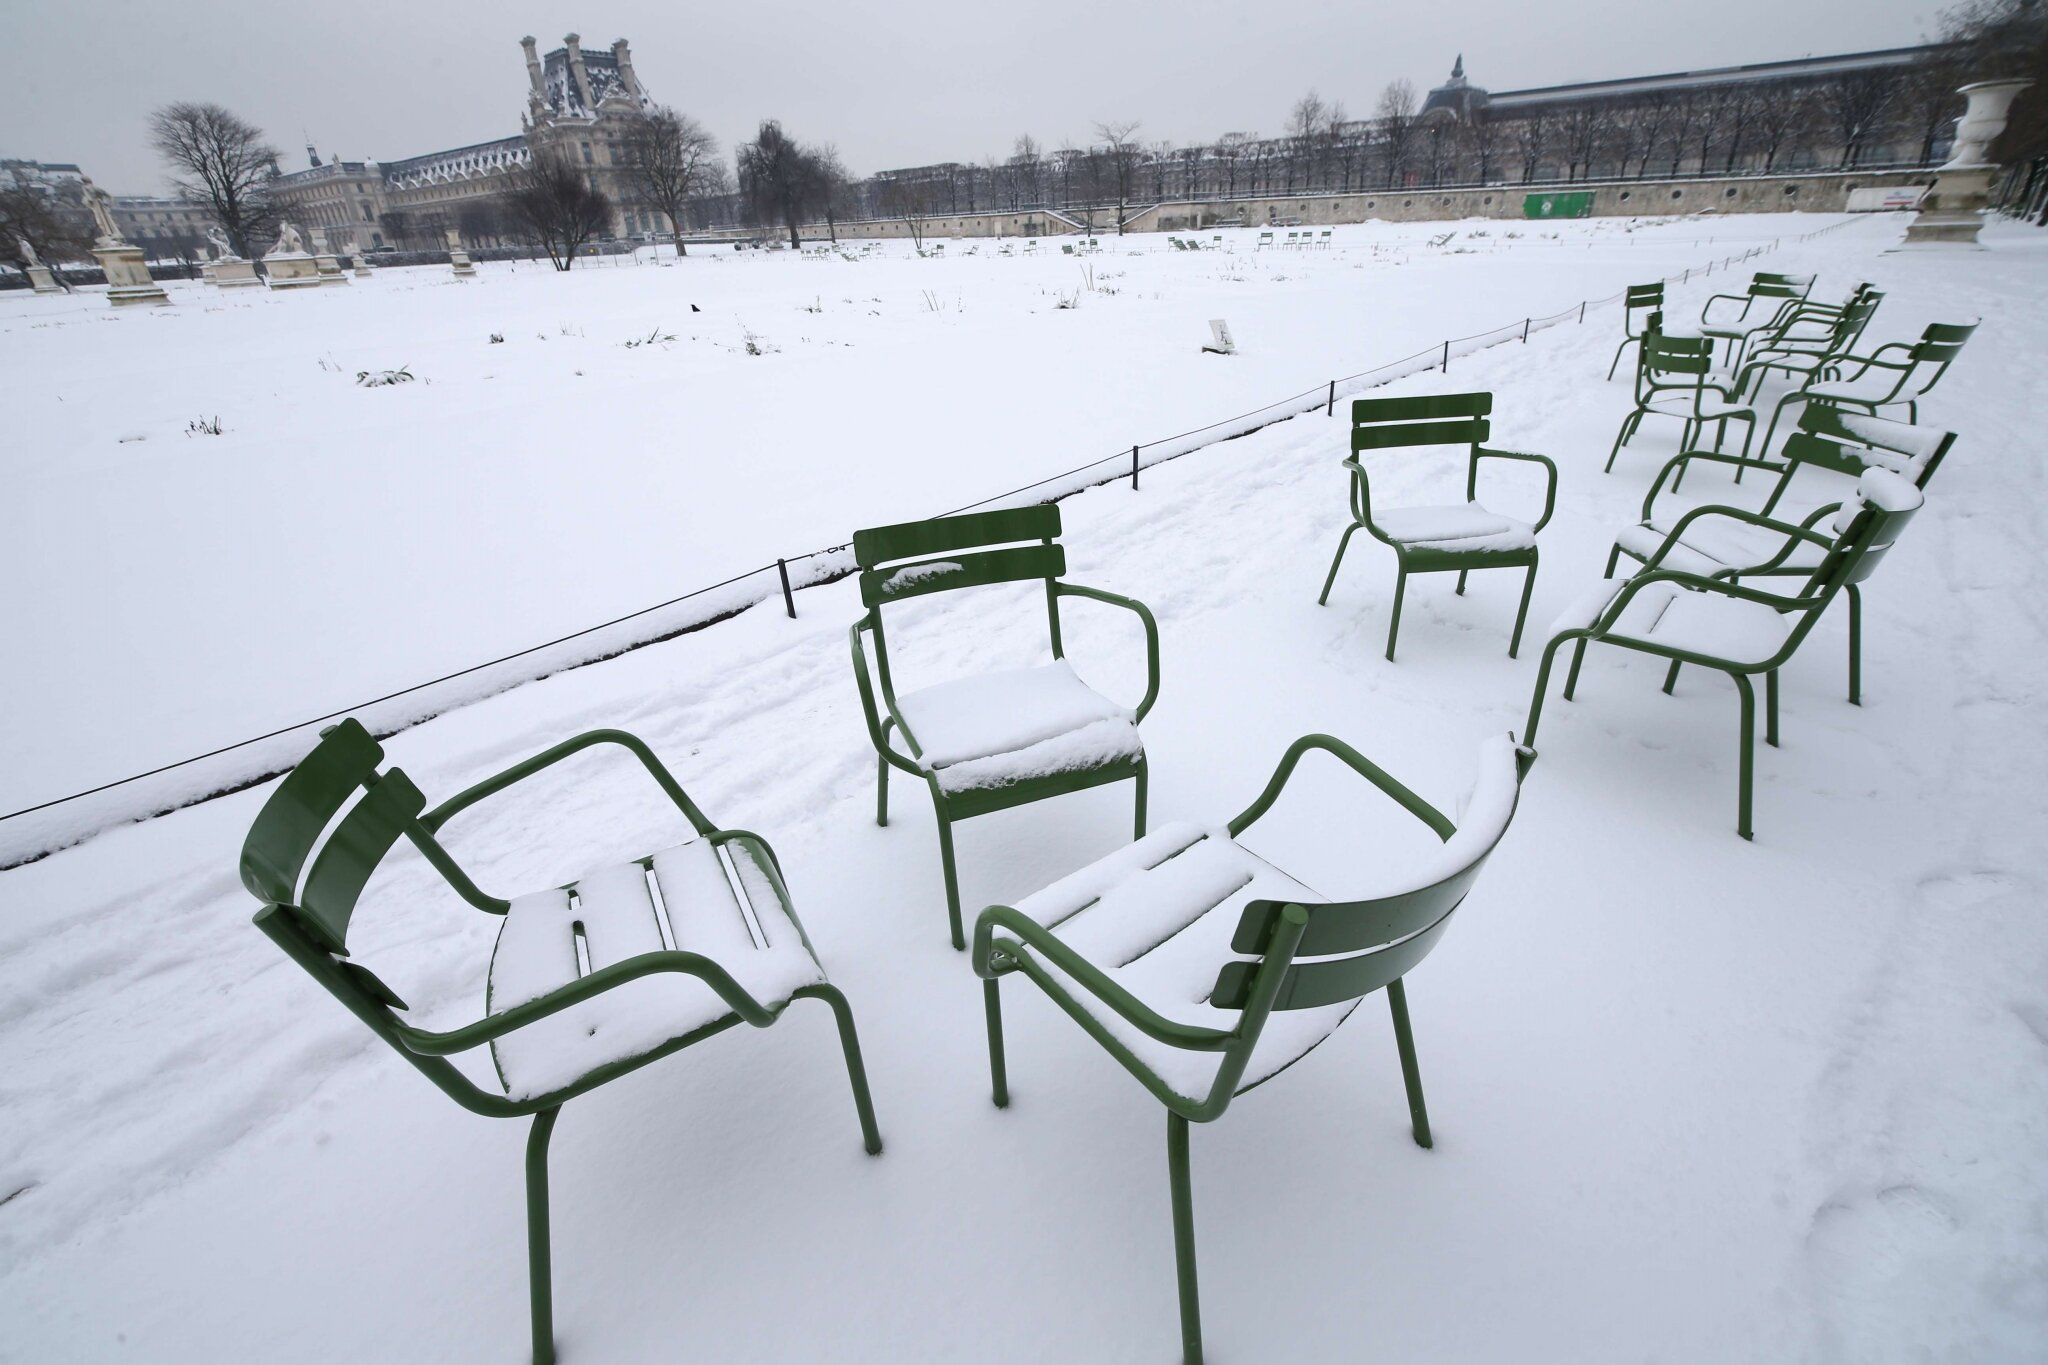 Paris sous la neige. © Photo Michel Stoupak. Sam 19.01.2013, 11:18.